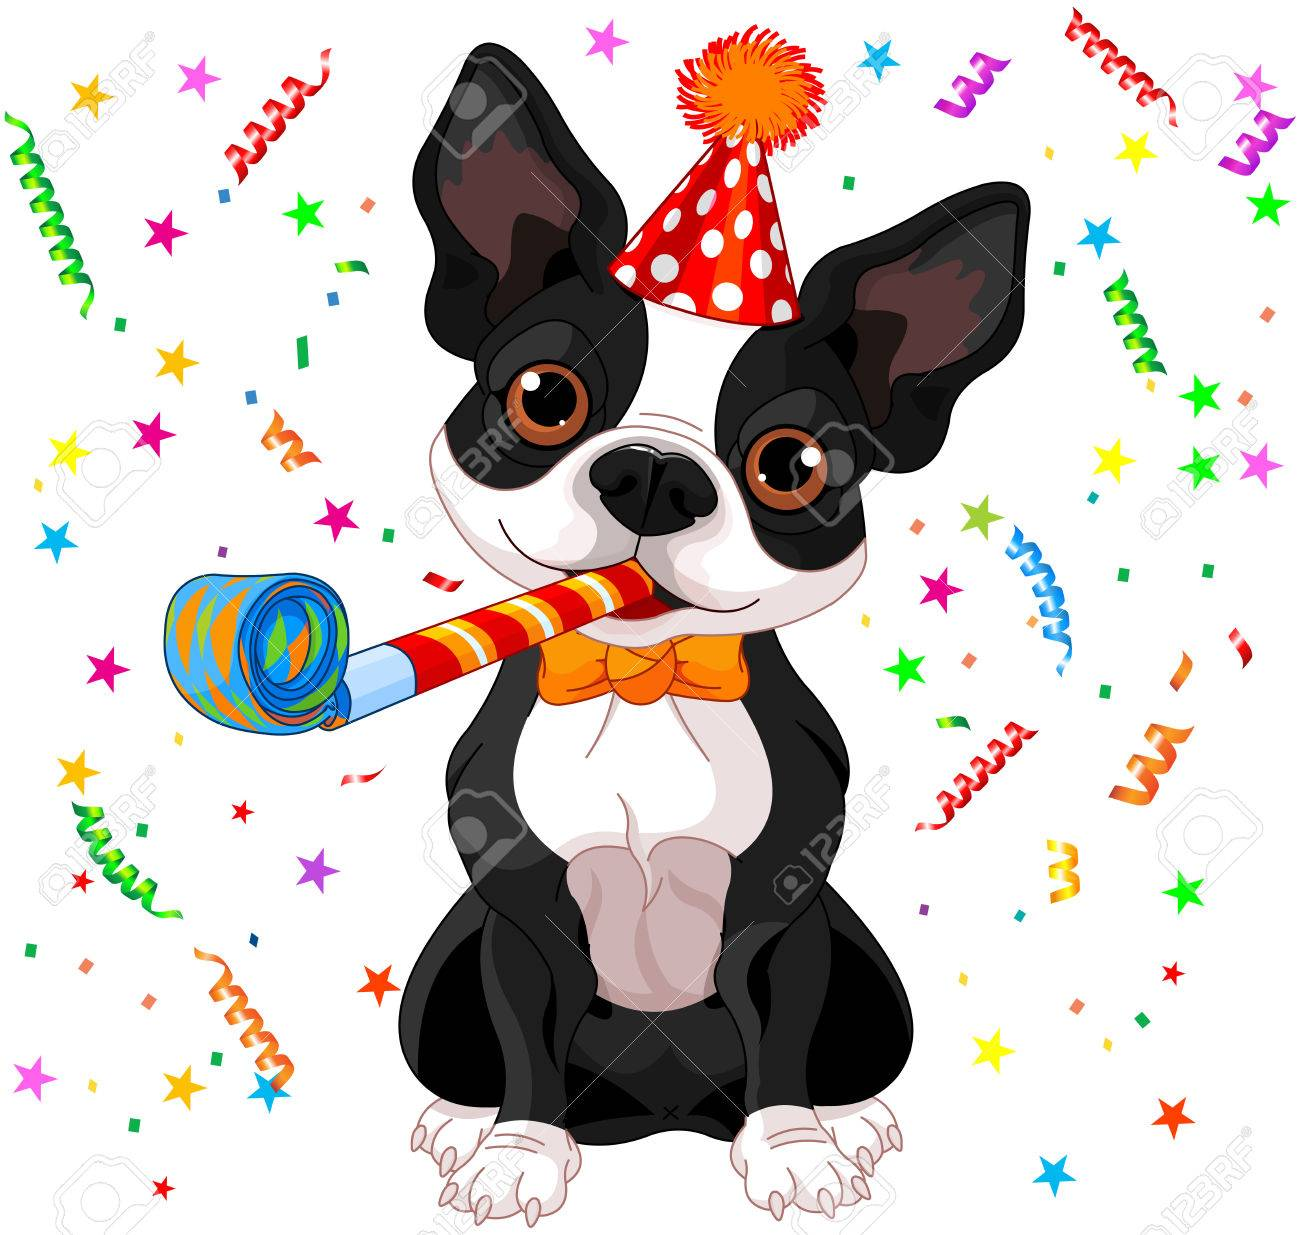 """Click to Calm"" - ""Cliquer pour calmer"" de Emma Parson 35588778-illustration-of-cute-boston-terrier-celebrating"